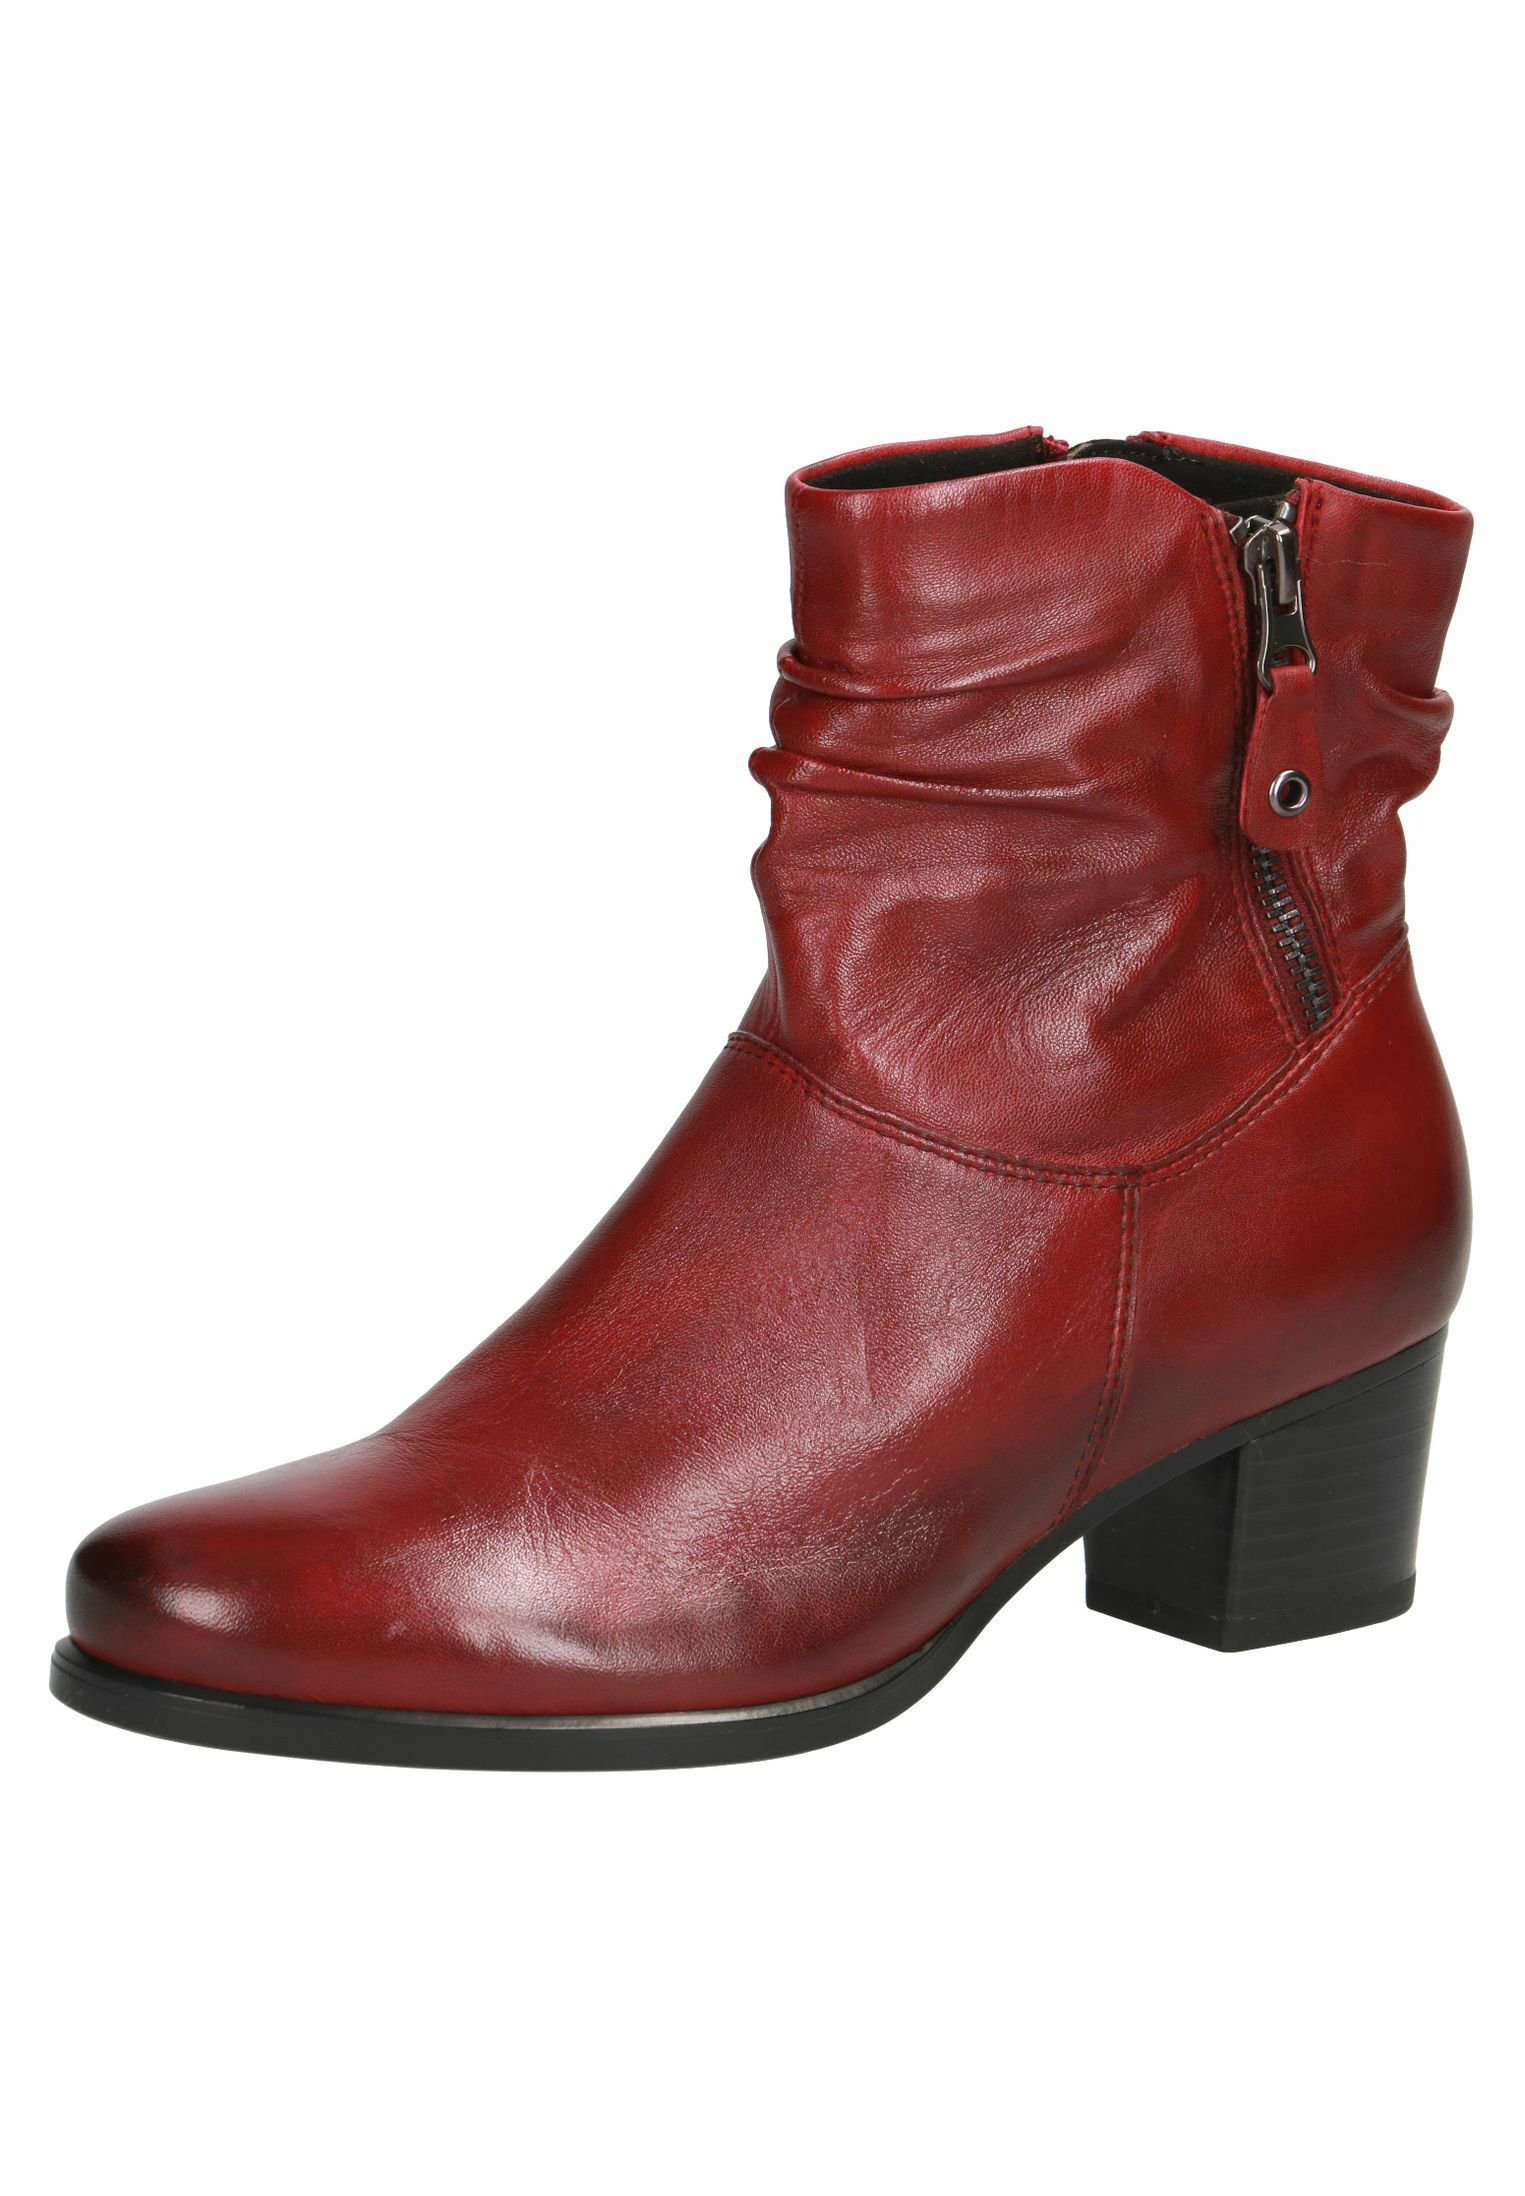 Caprice STIEFELETTE Ankle Boot sangria soft/rot